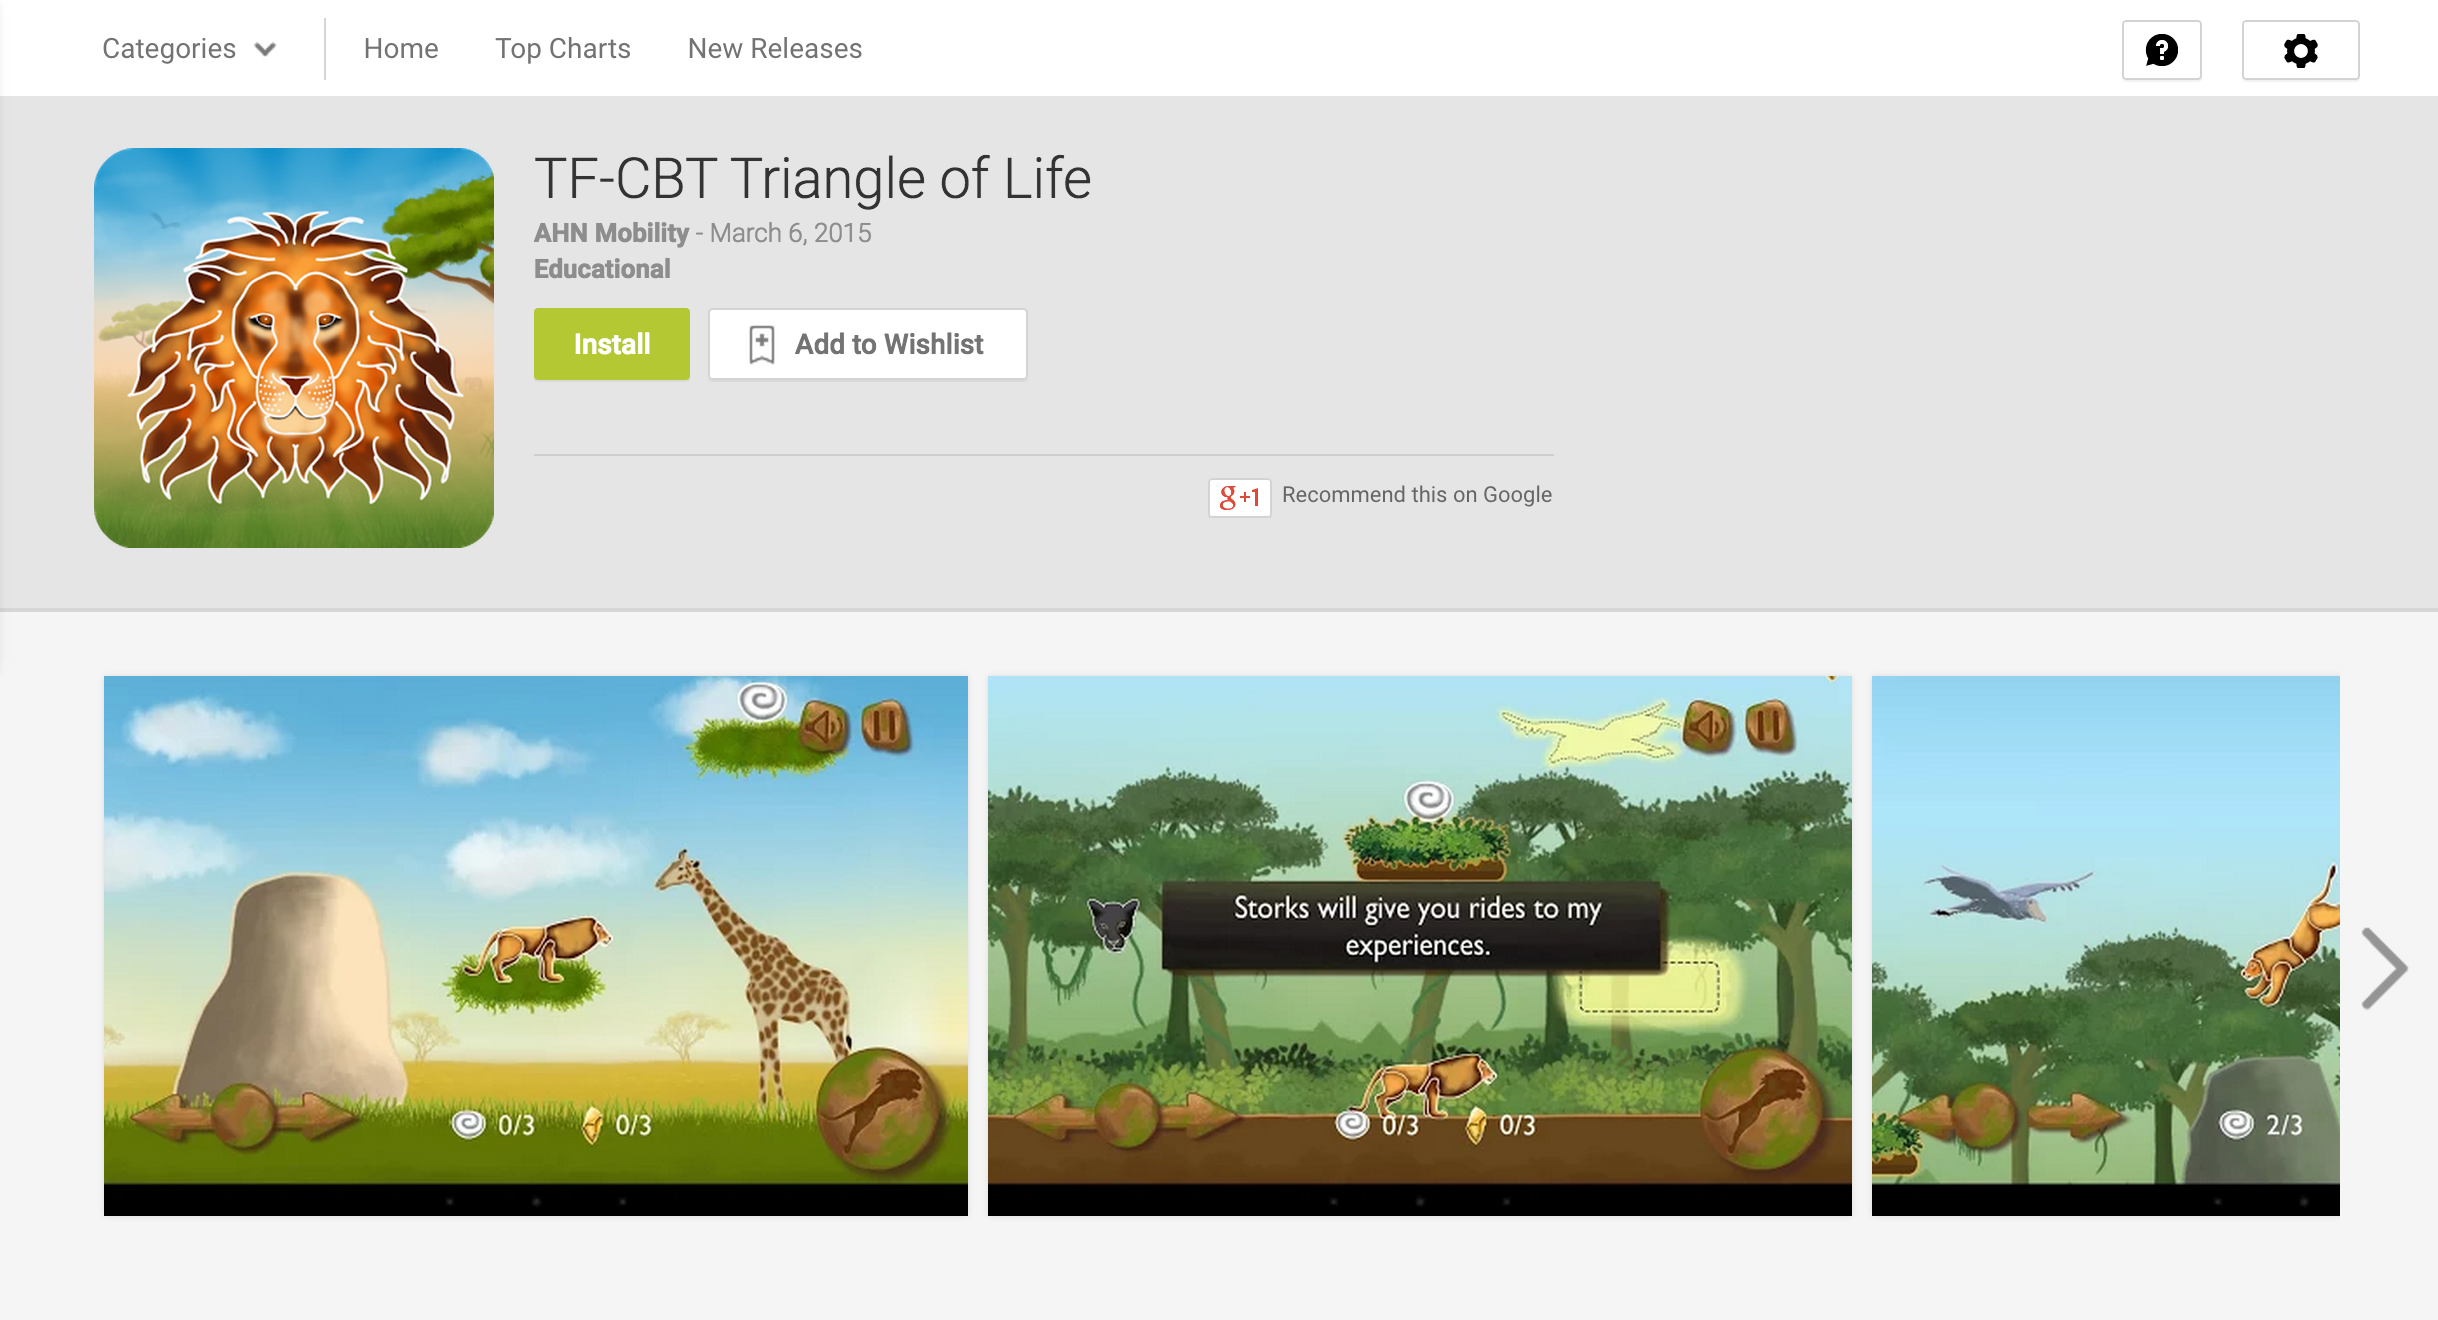 Google Play Store page